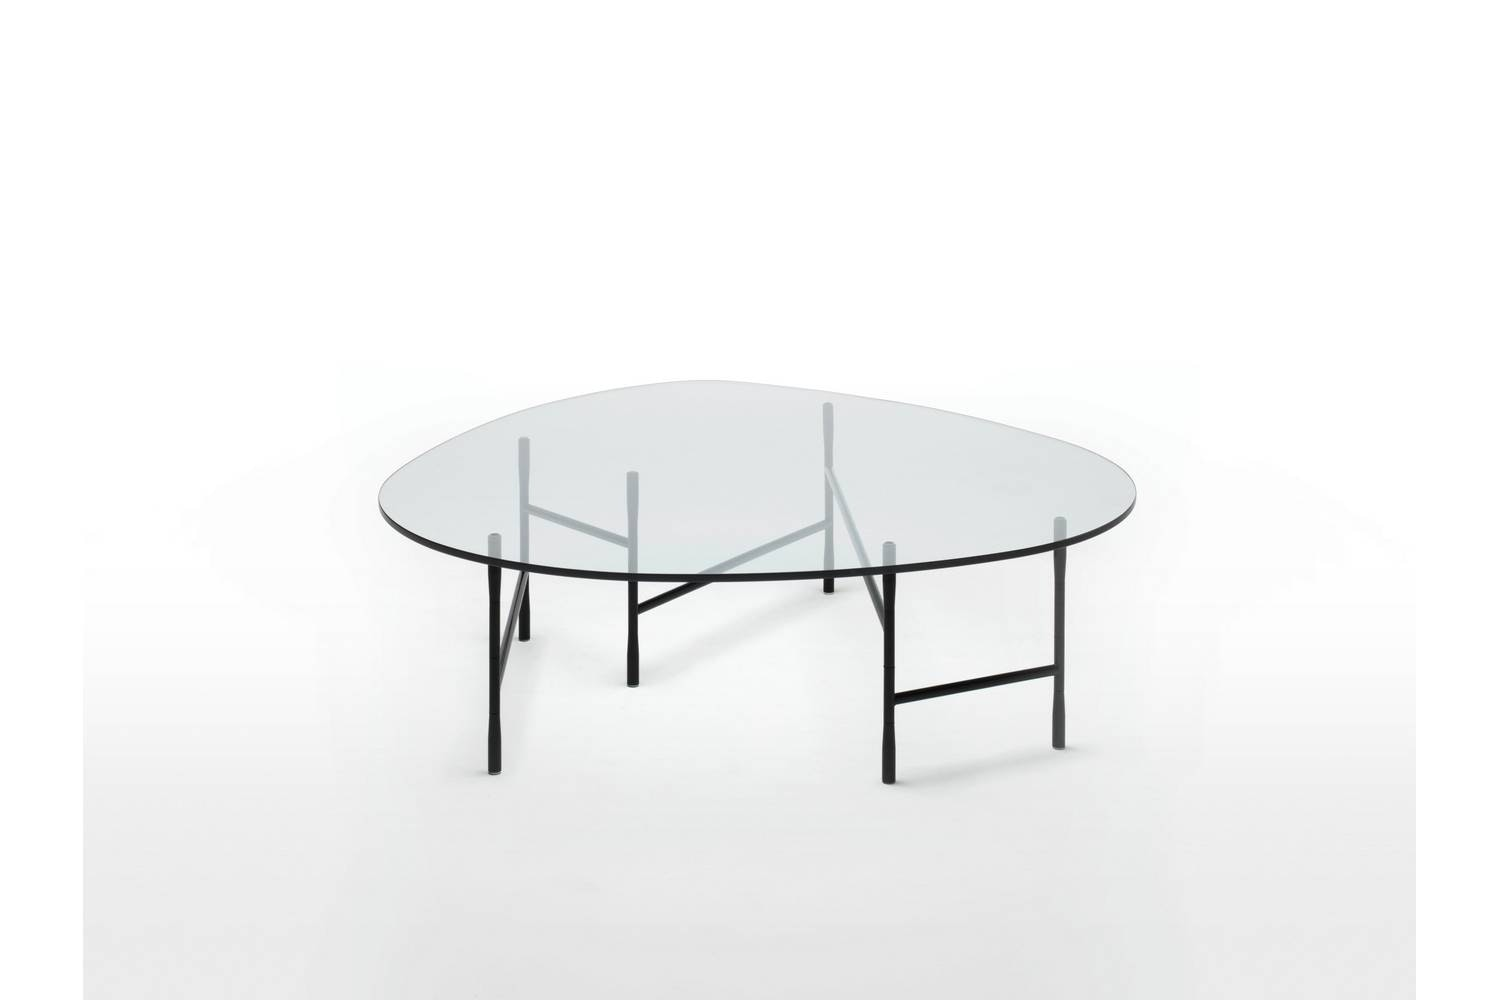 Hinge Table by Francesco Rota for Living Divani